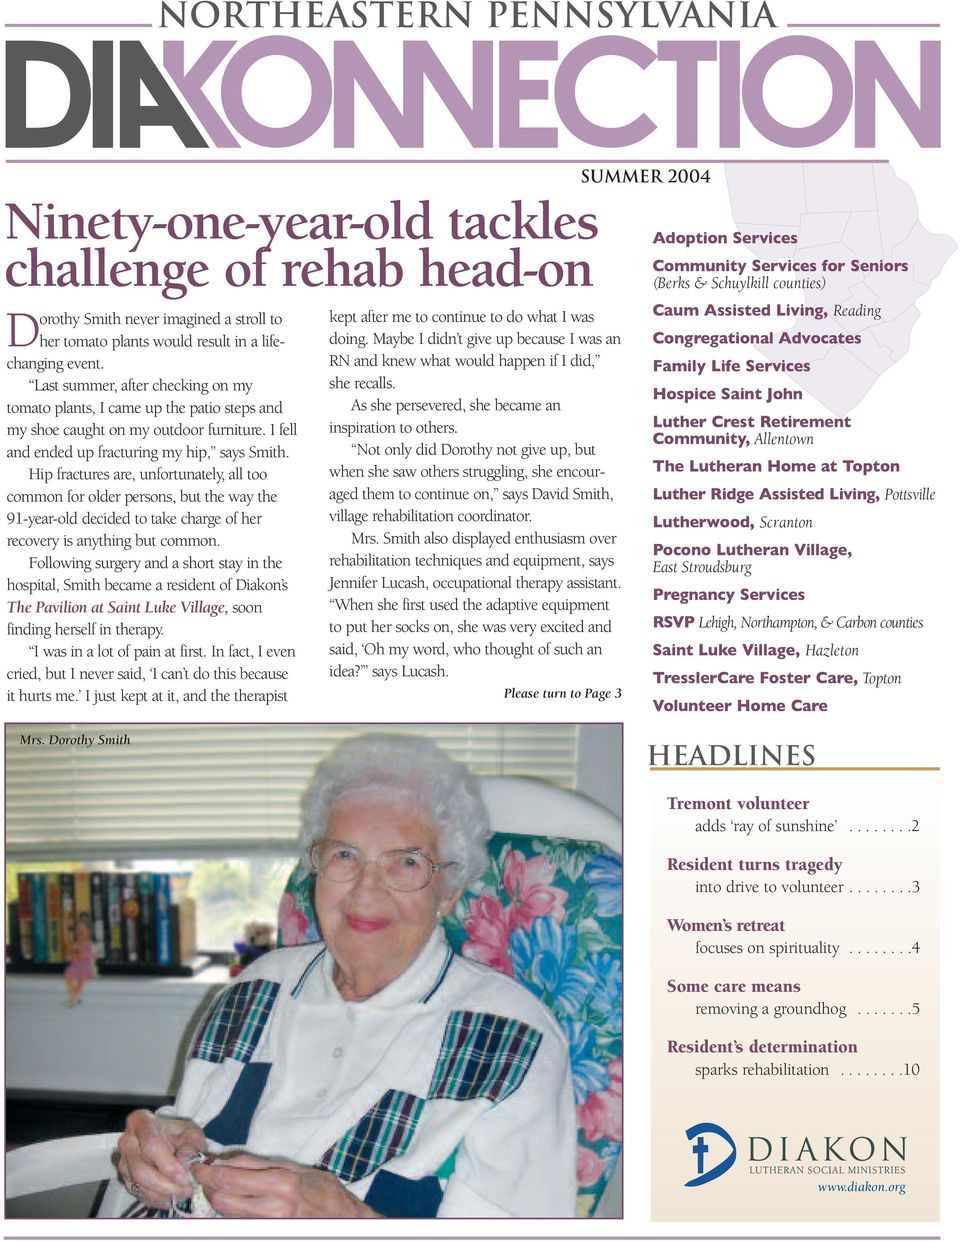 Hip fractures are, unfortunately, all too common for older persons, but the way the 91-year-old decided to take charge of her recovery is anything but common.